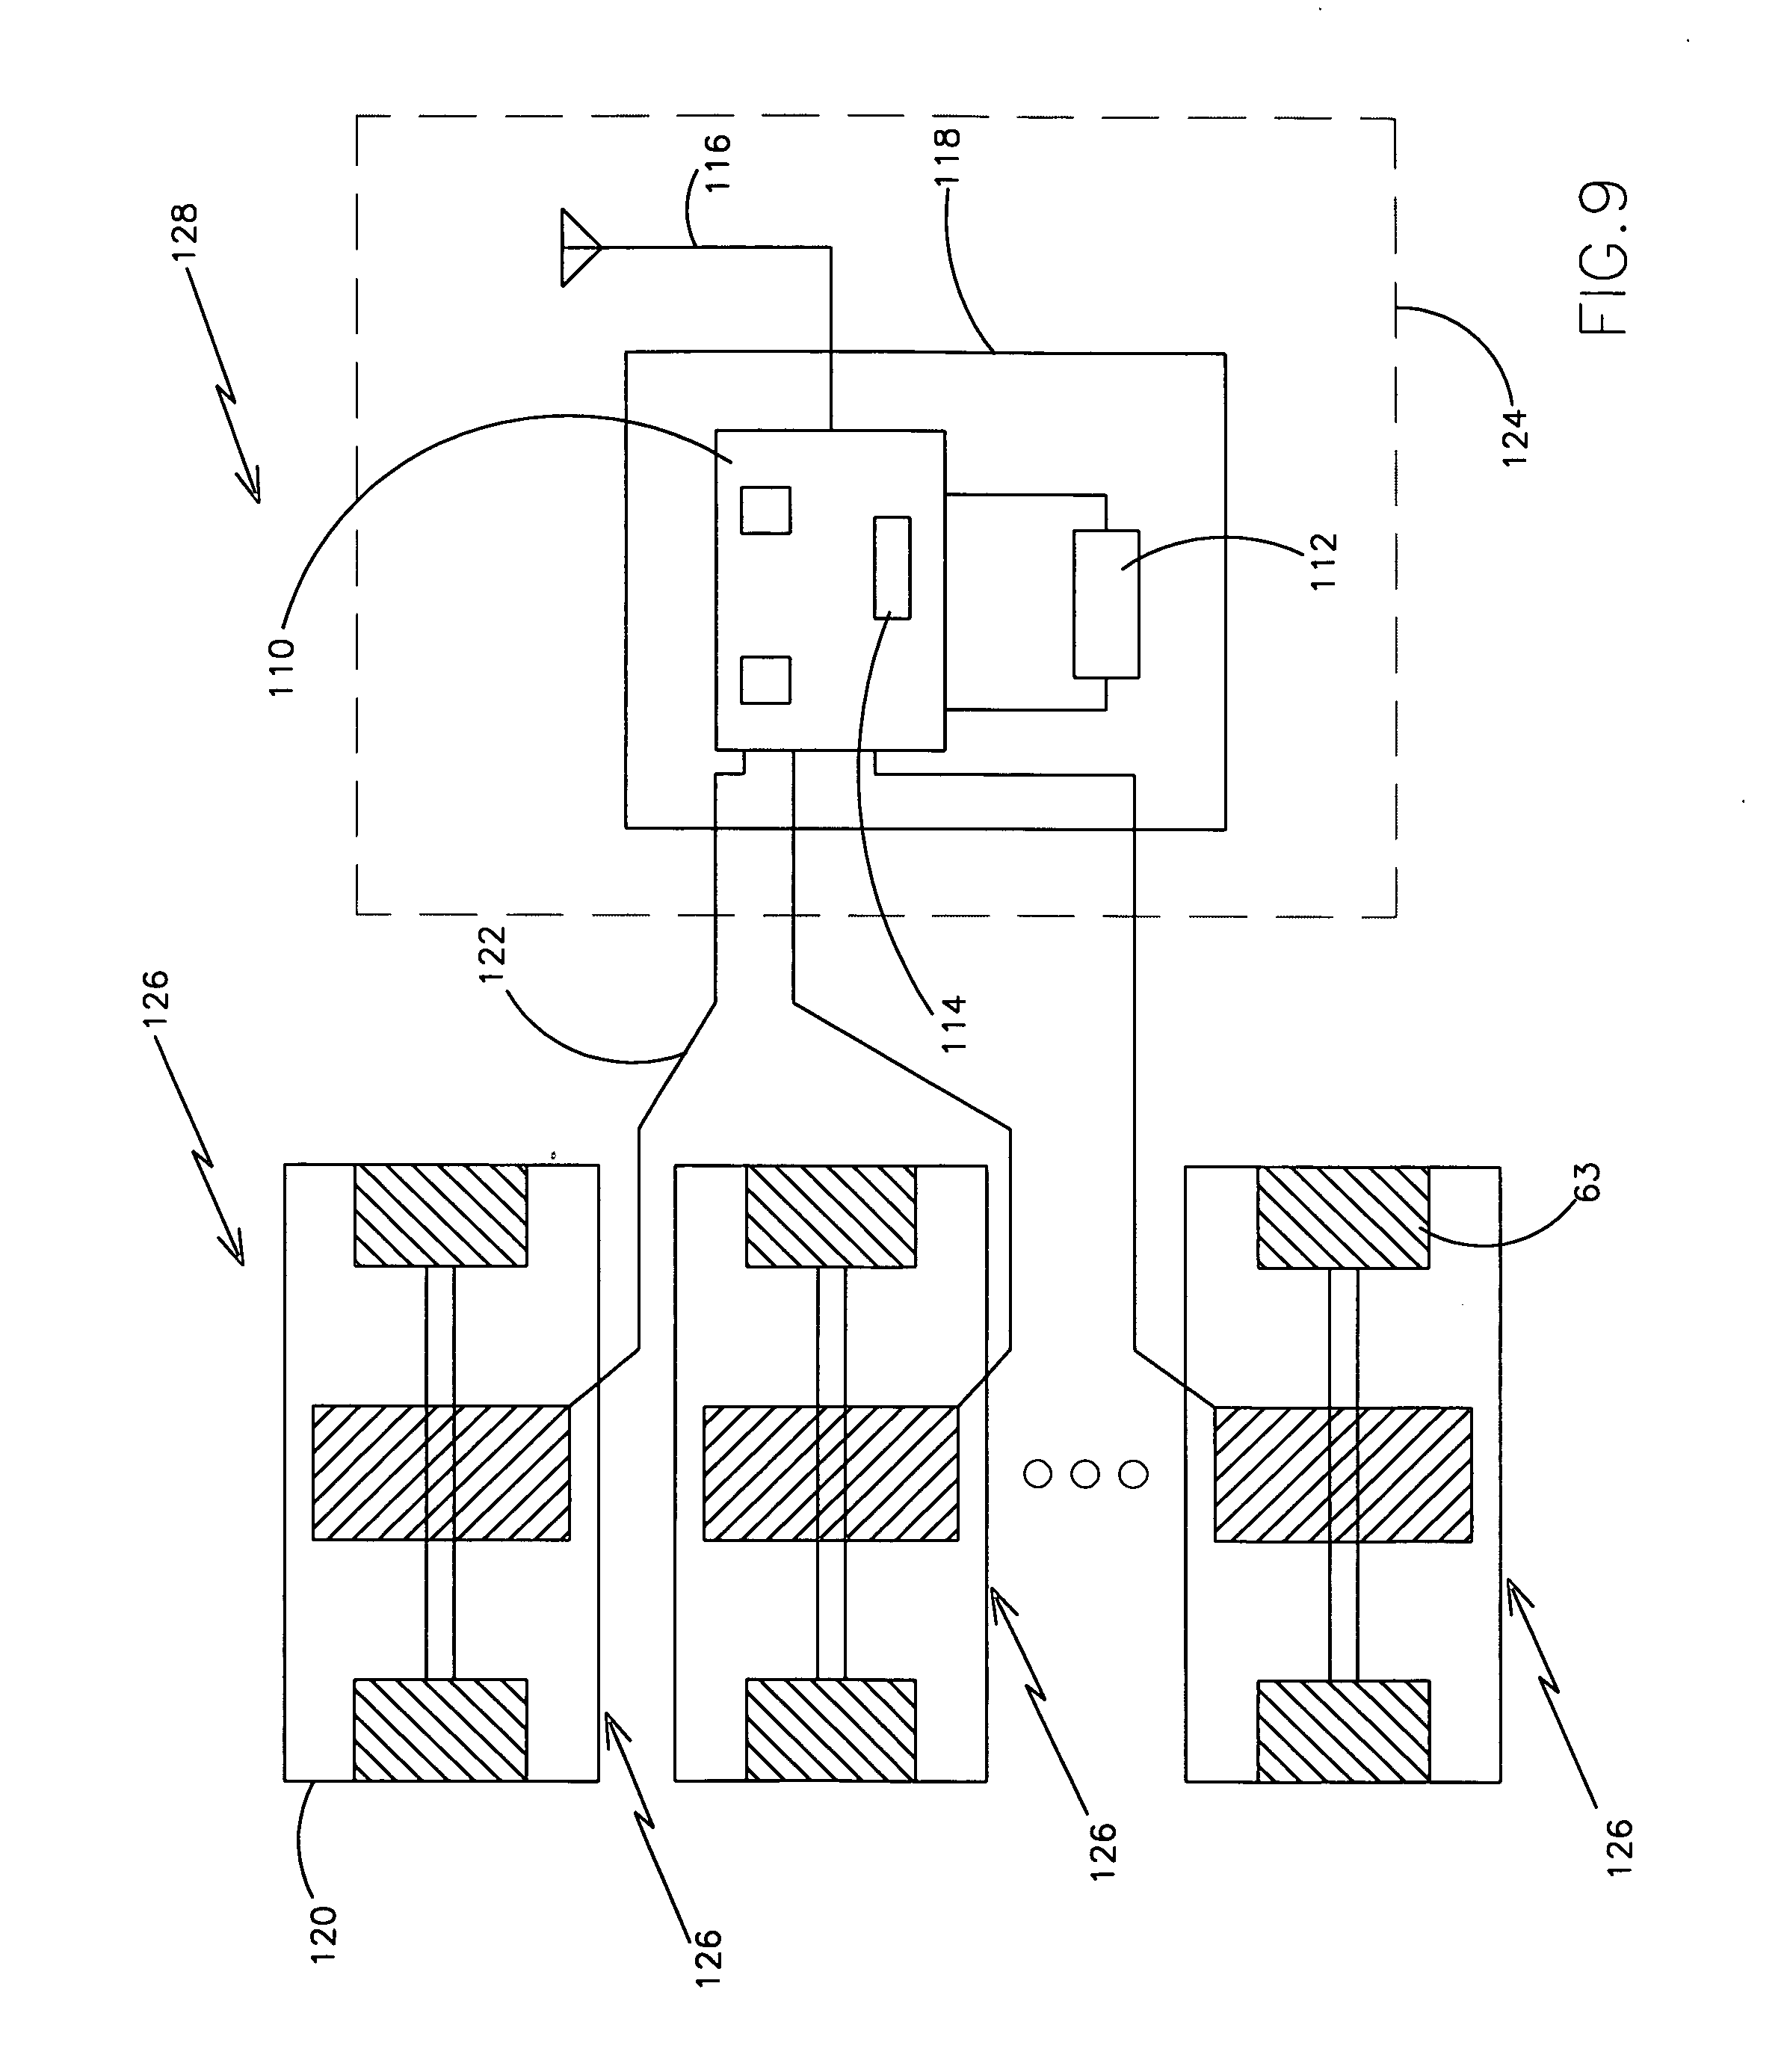 Patent Us20060254365 Wireless Vibrating Strain Gauge For Smart Detector Circuit Vibration Impulse Counter Water Switch Sensor Drawing